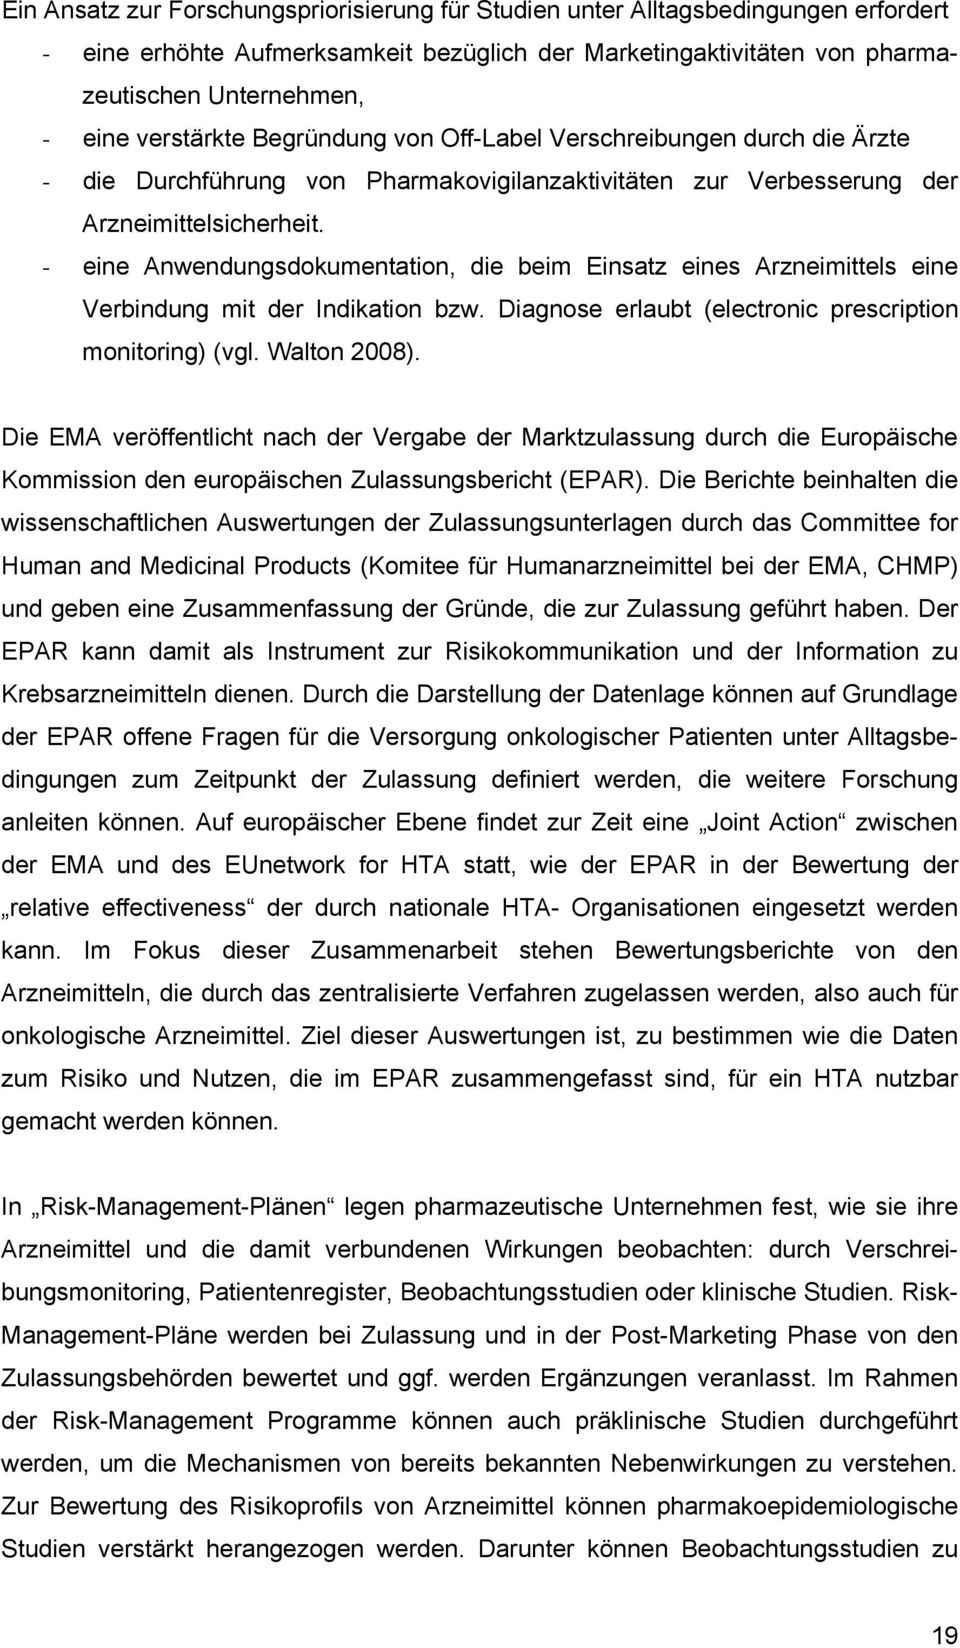 - eine Anwendungsdokumentation, die beim Einsatz eines Arzneimittels eine Verbindung mit der Indikation bzw. Diagnose erlaubt (electronic prescription monitoring) (vgl. Walton 2008).